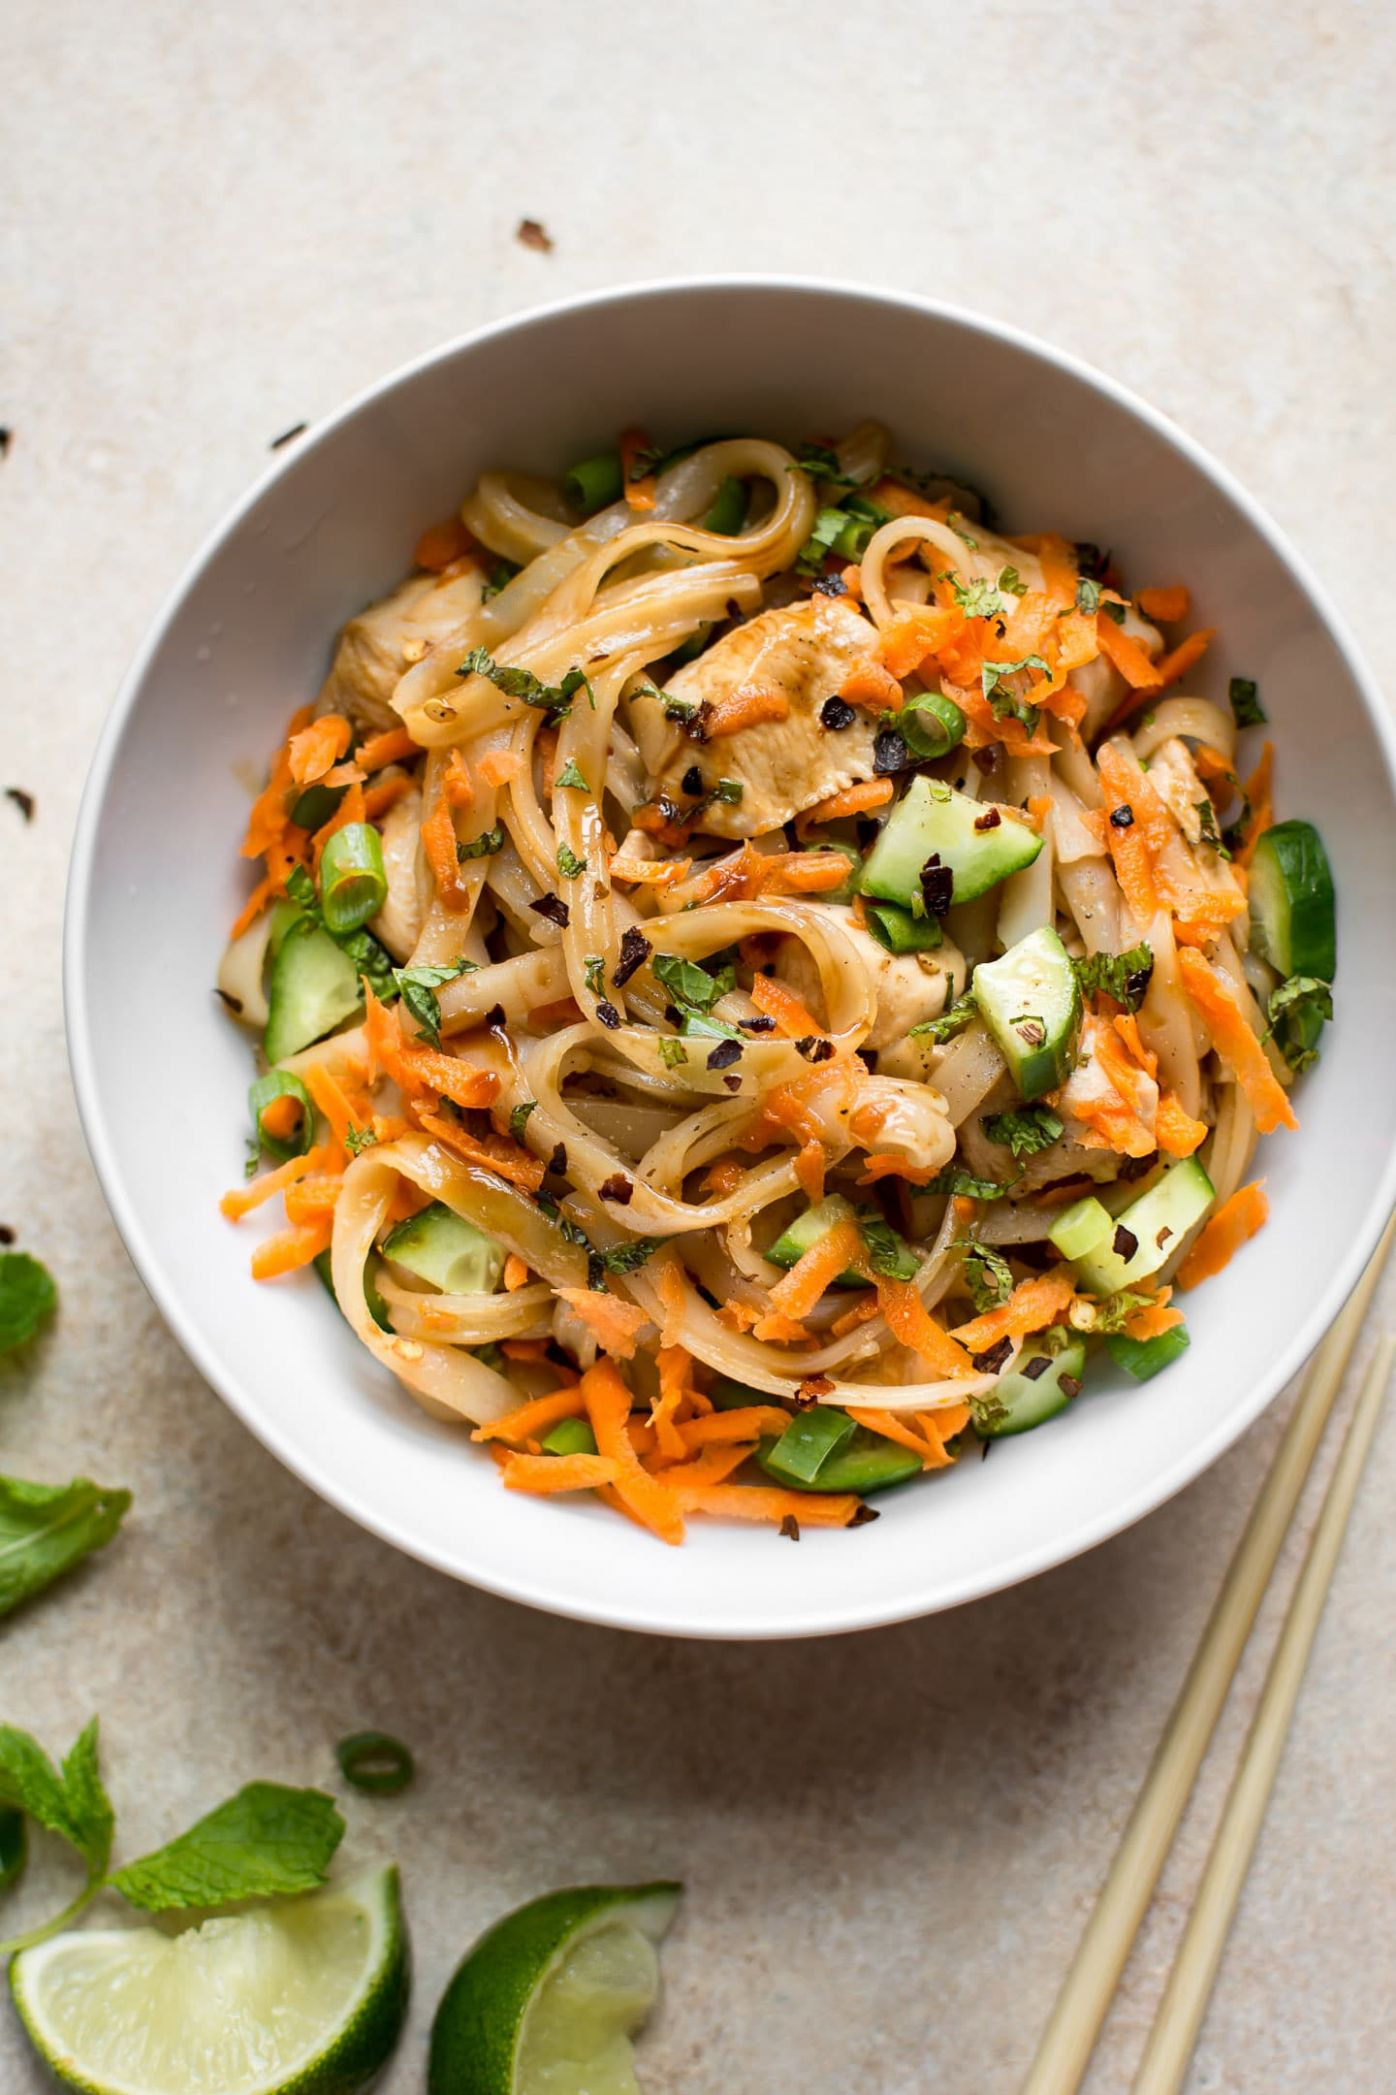 Chicken Stir Fry with Rice Noodles - Recipes Rice Noodles Chicken